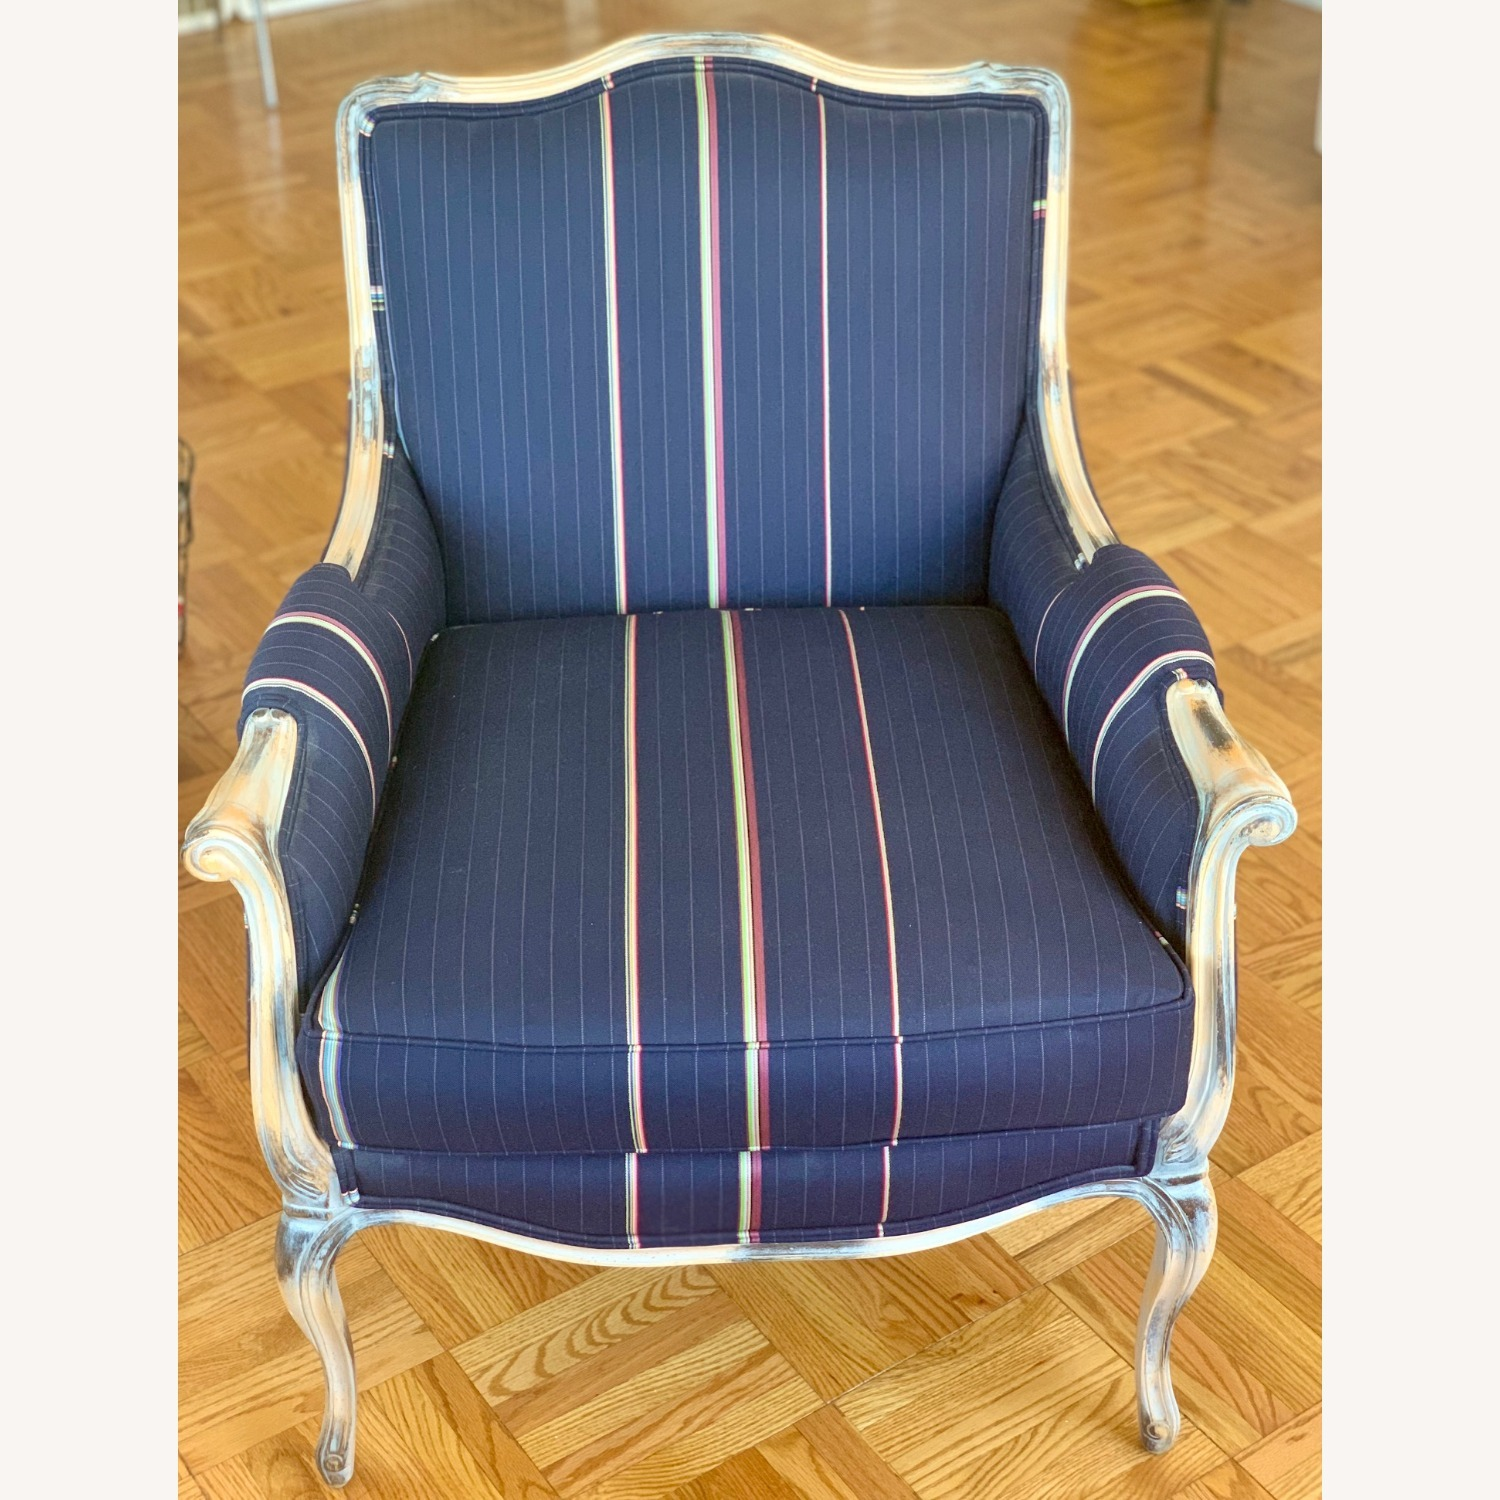 Anthropologie Paul Smith Collection Armchair - image-1